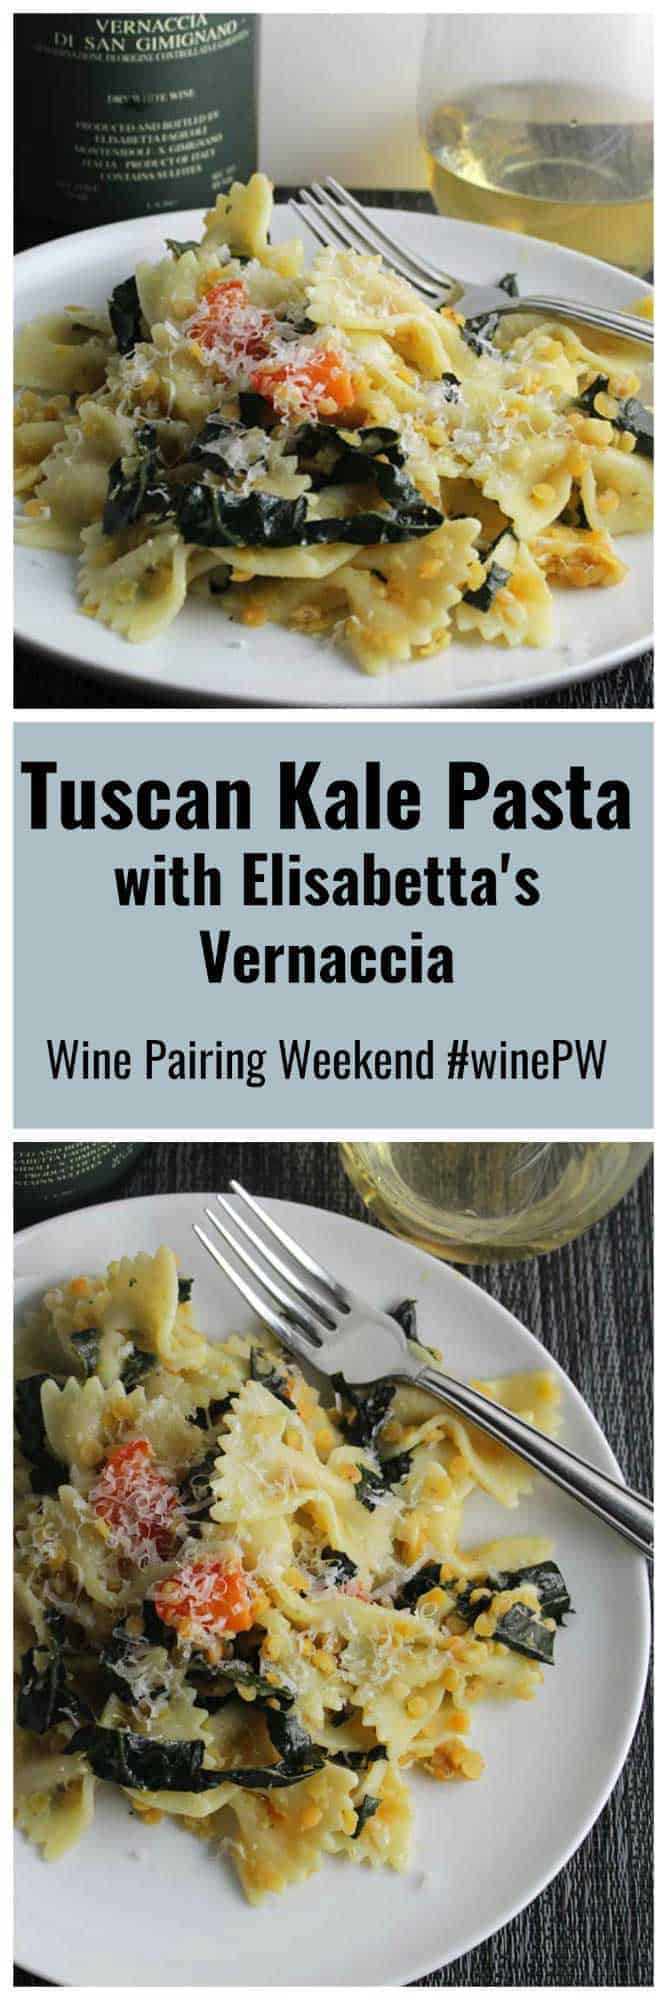 two images of Tuscan kale pasta on a plate served with white wine.